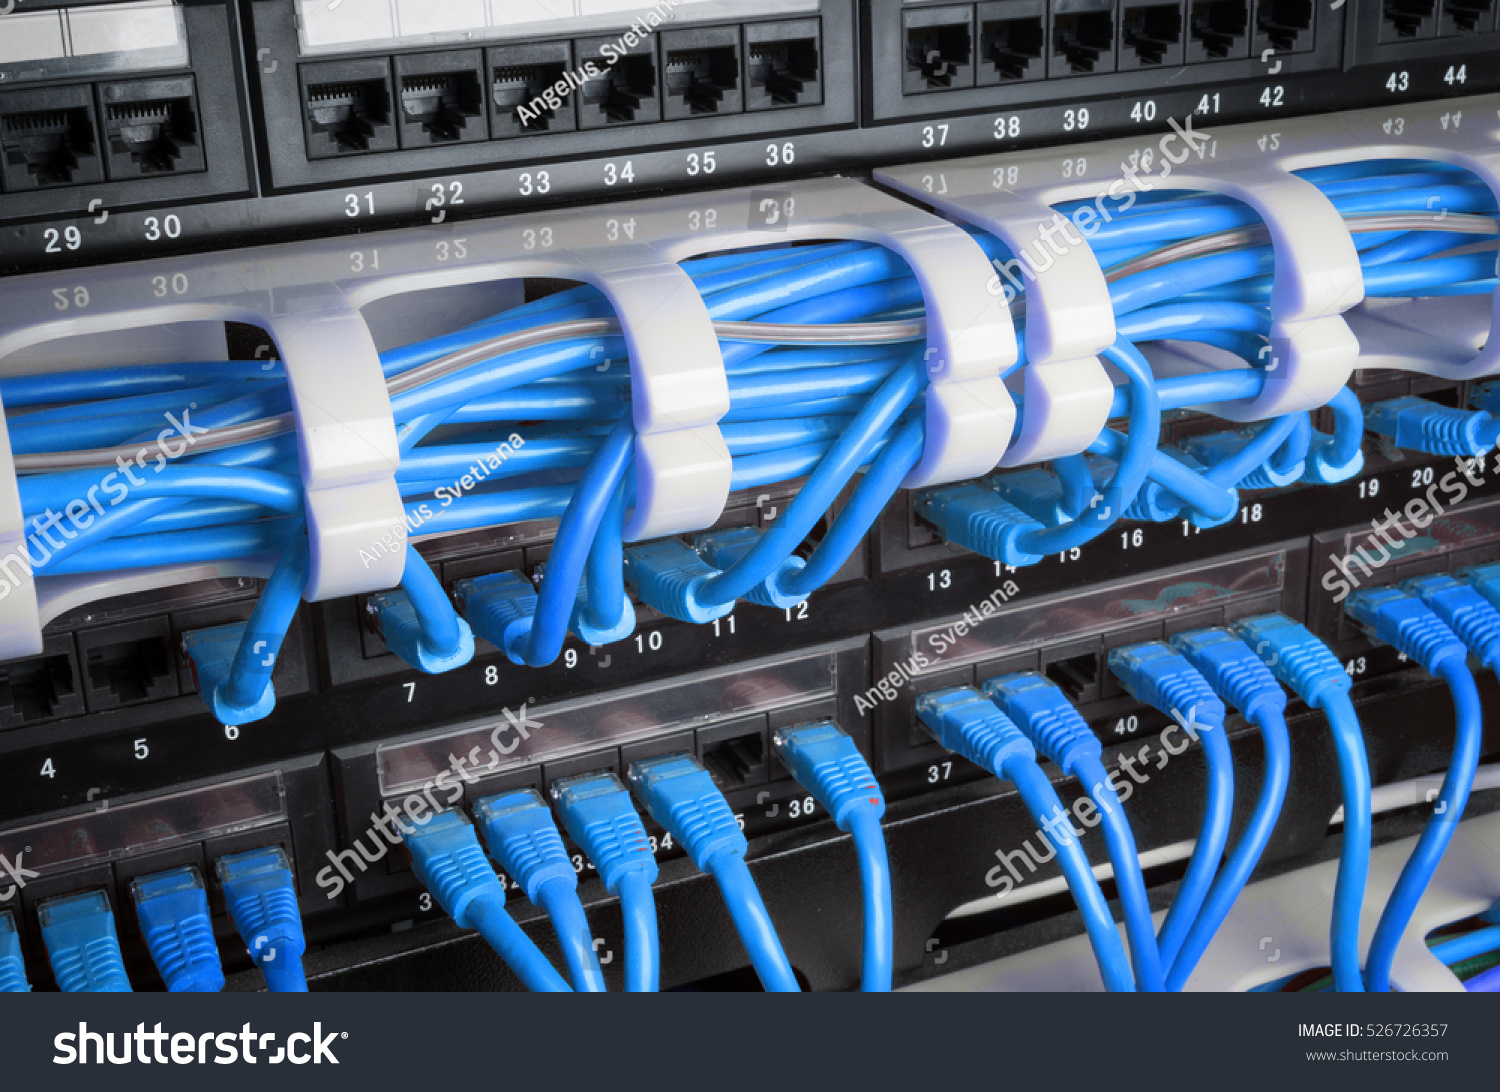 Server Rack Blue Internet Patch Cord Stock Photo Edit Now For Panel Of System On Wiring House Ethernet With Cables Connected To In Room